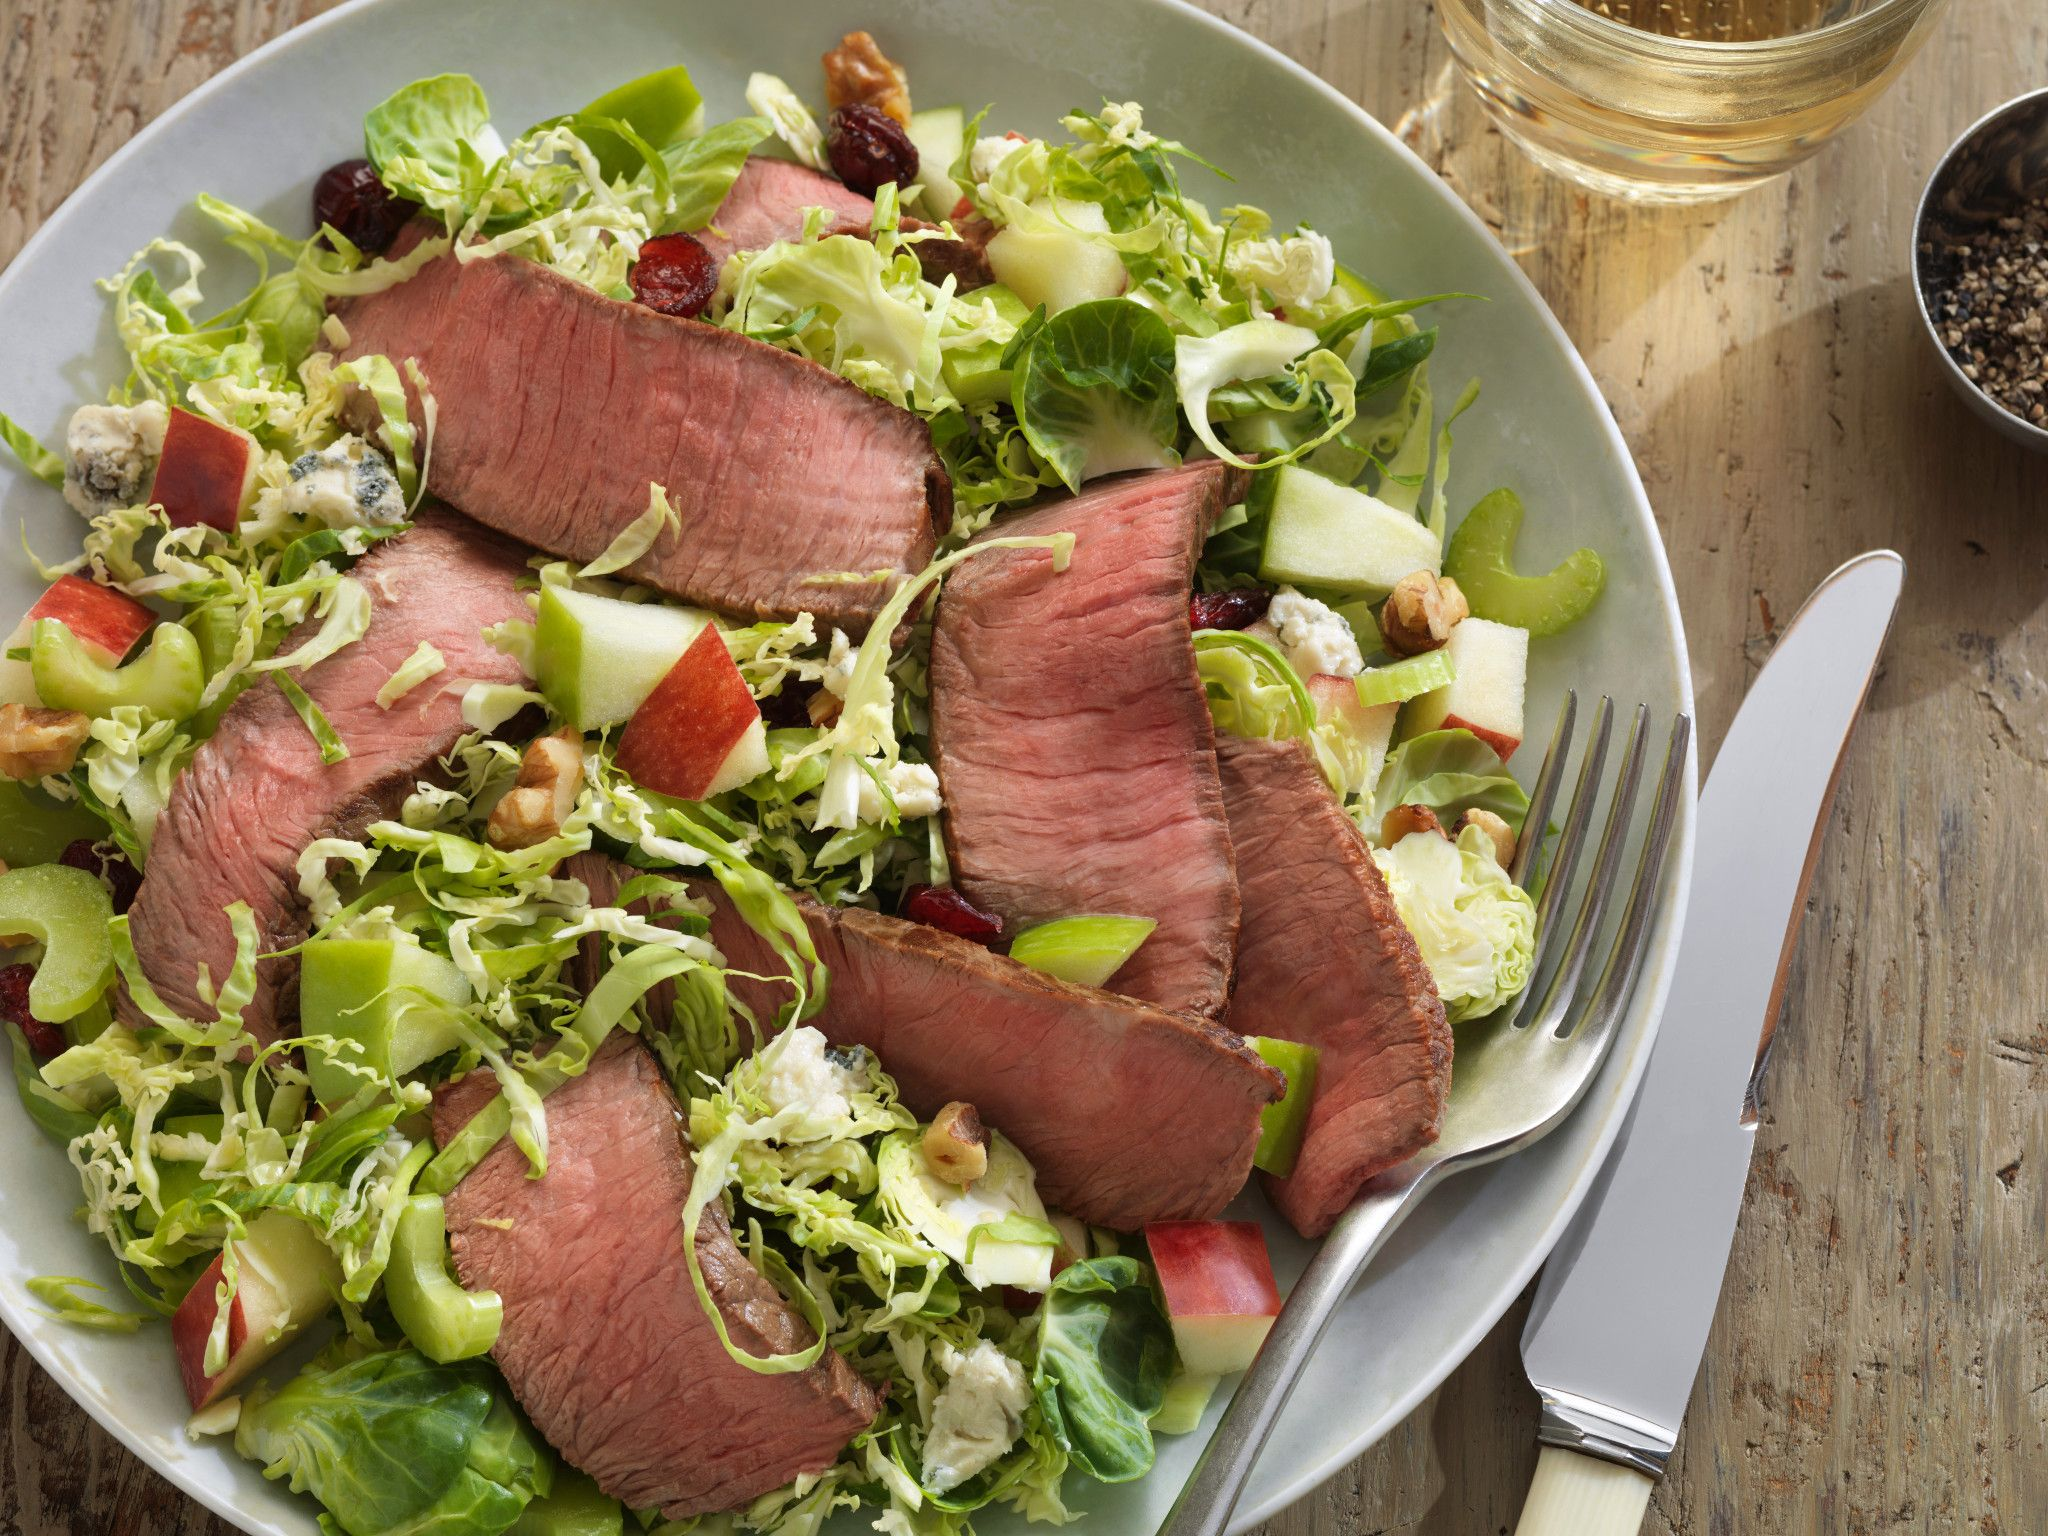 Four-Seasons Beef and Brussels Sprout Chopped Salad